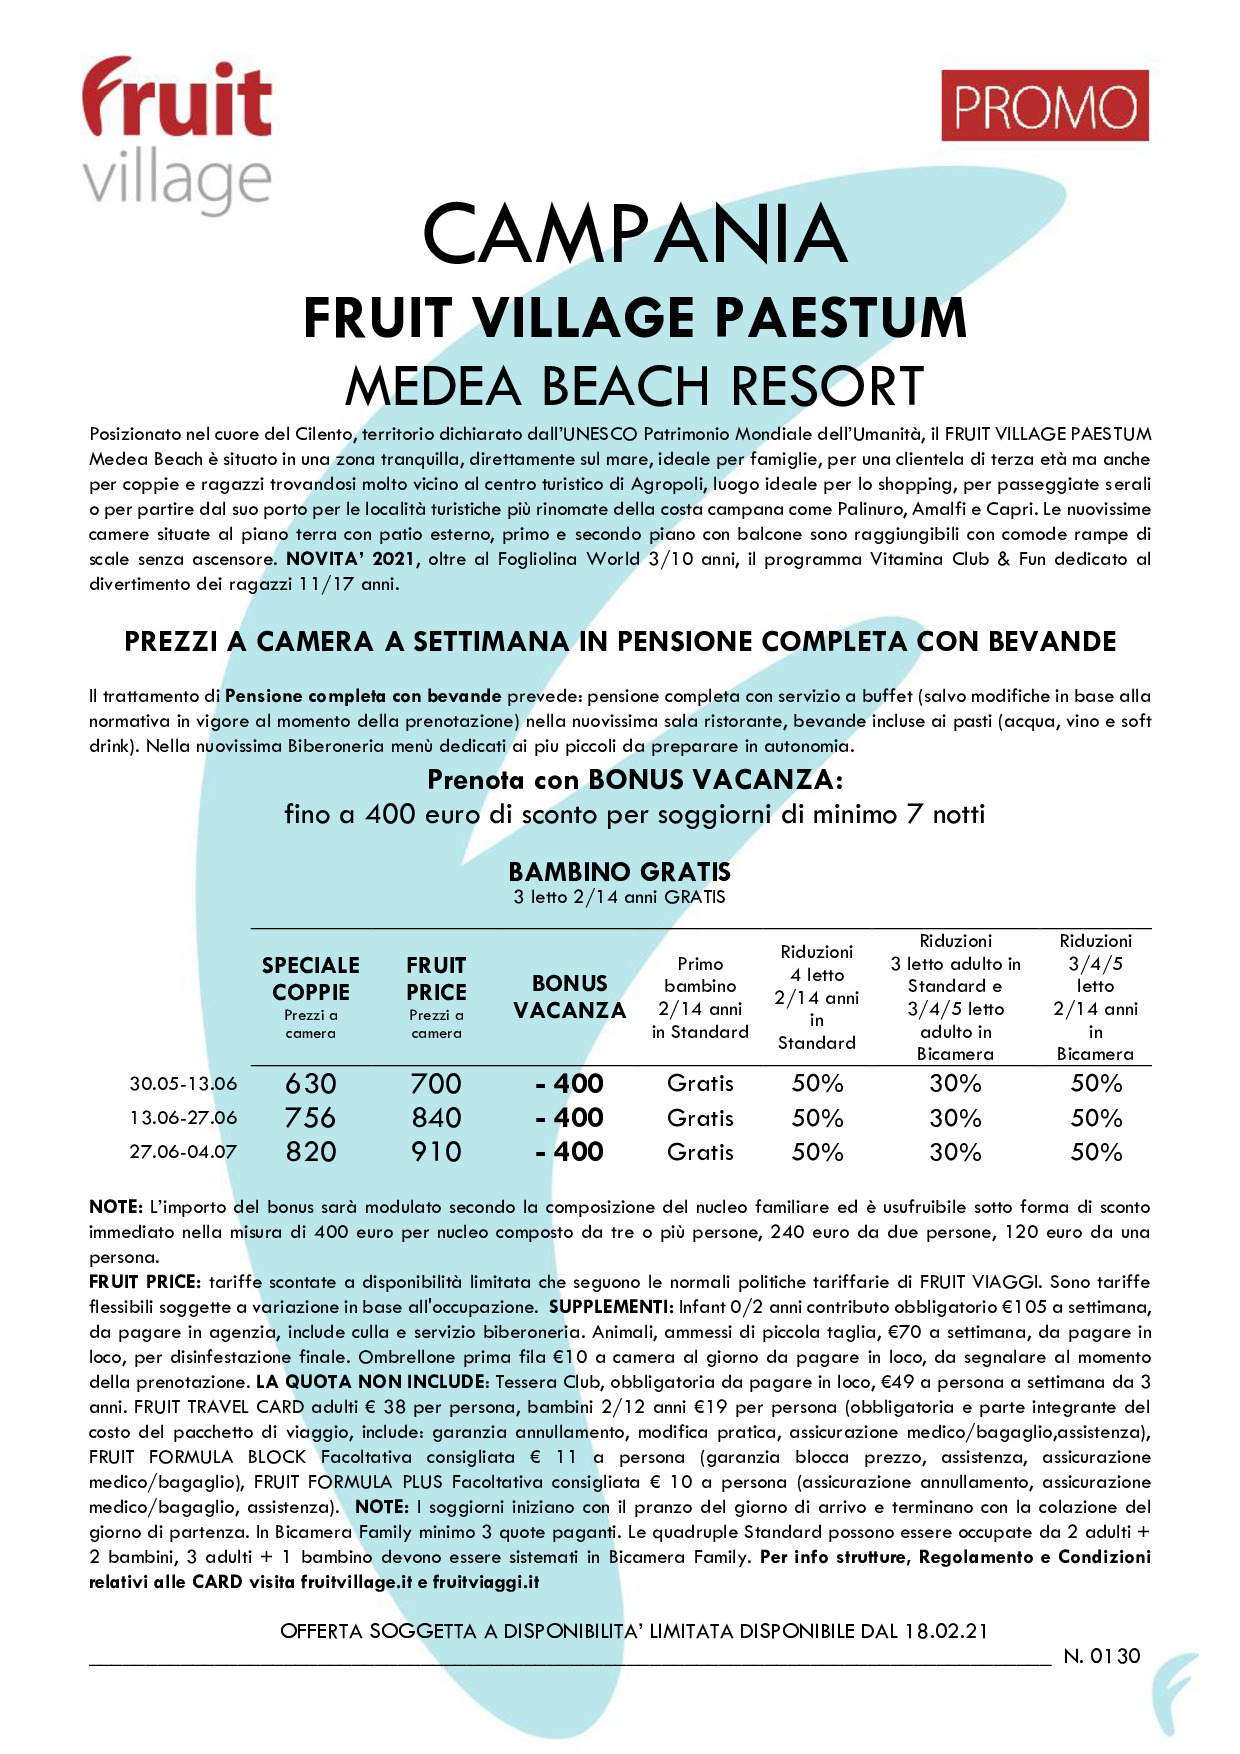 FRUIT VILLAGE Paestum Medea Beach Resort SPECIALE BONUS VACANZA